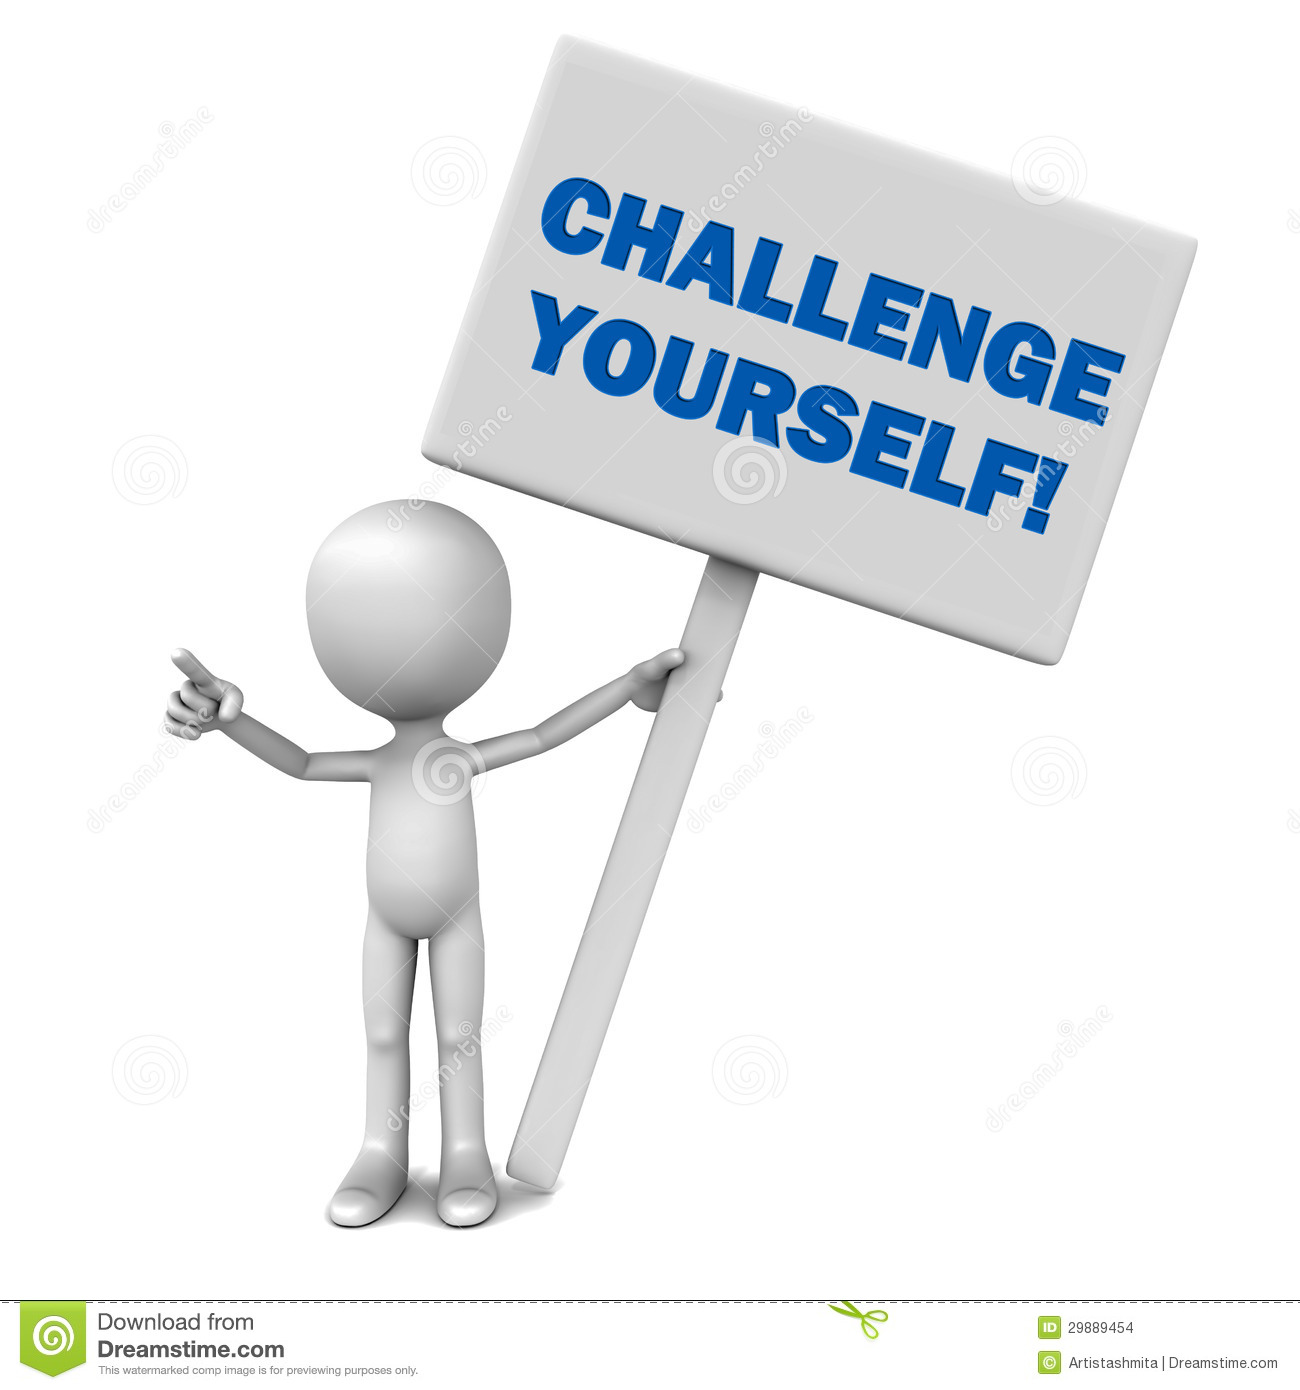 Challenge Yourself Words On A Large Banner Held Up By A Little 3d Man